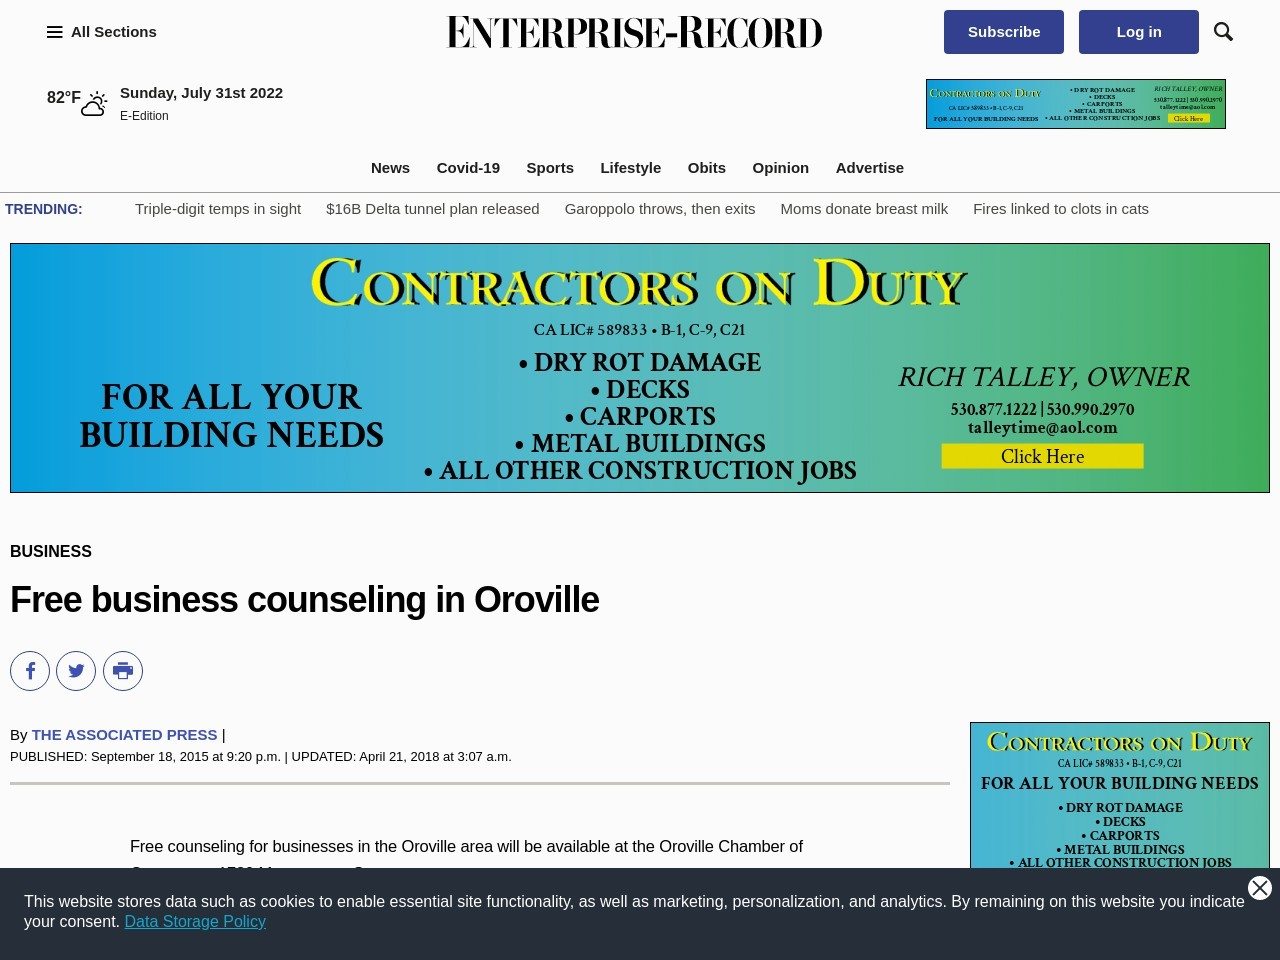 Free business counseling in Oroville